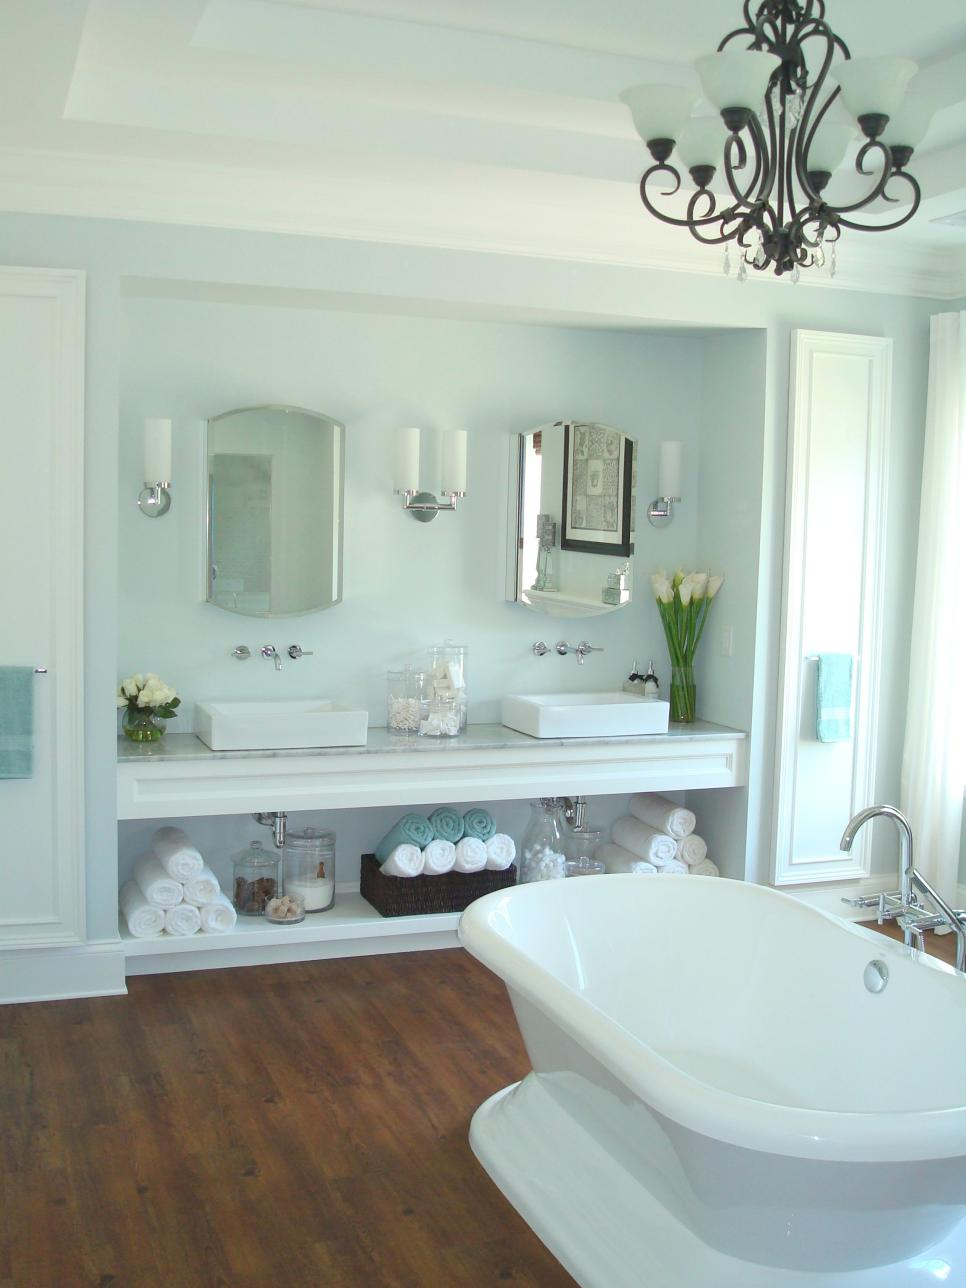 Bathroom vanities for any style hgtv for Bathroom designs hgtv